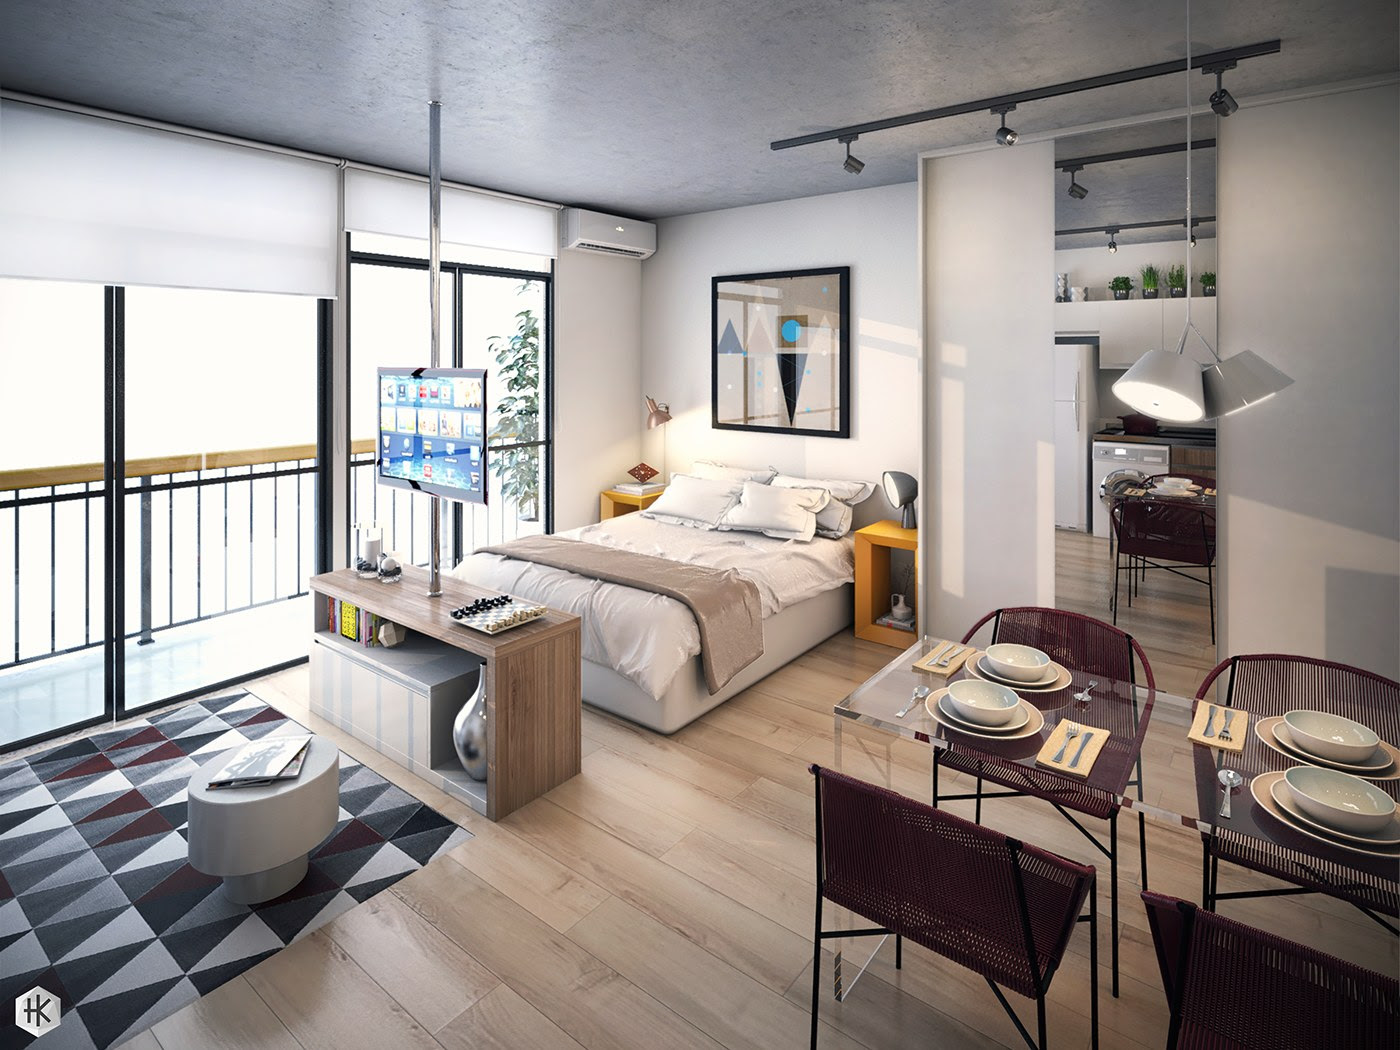 Working With A Studio Apartment Design - MidCityEast